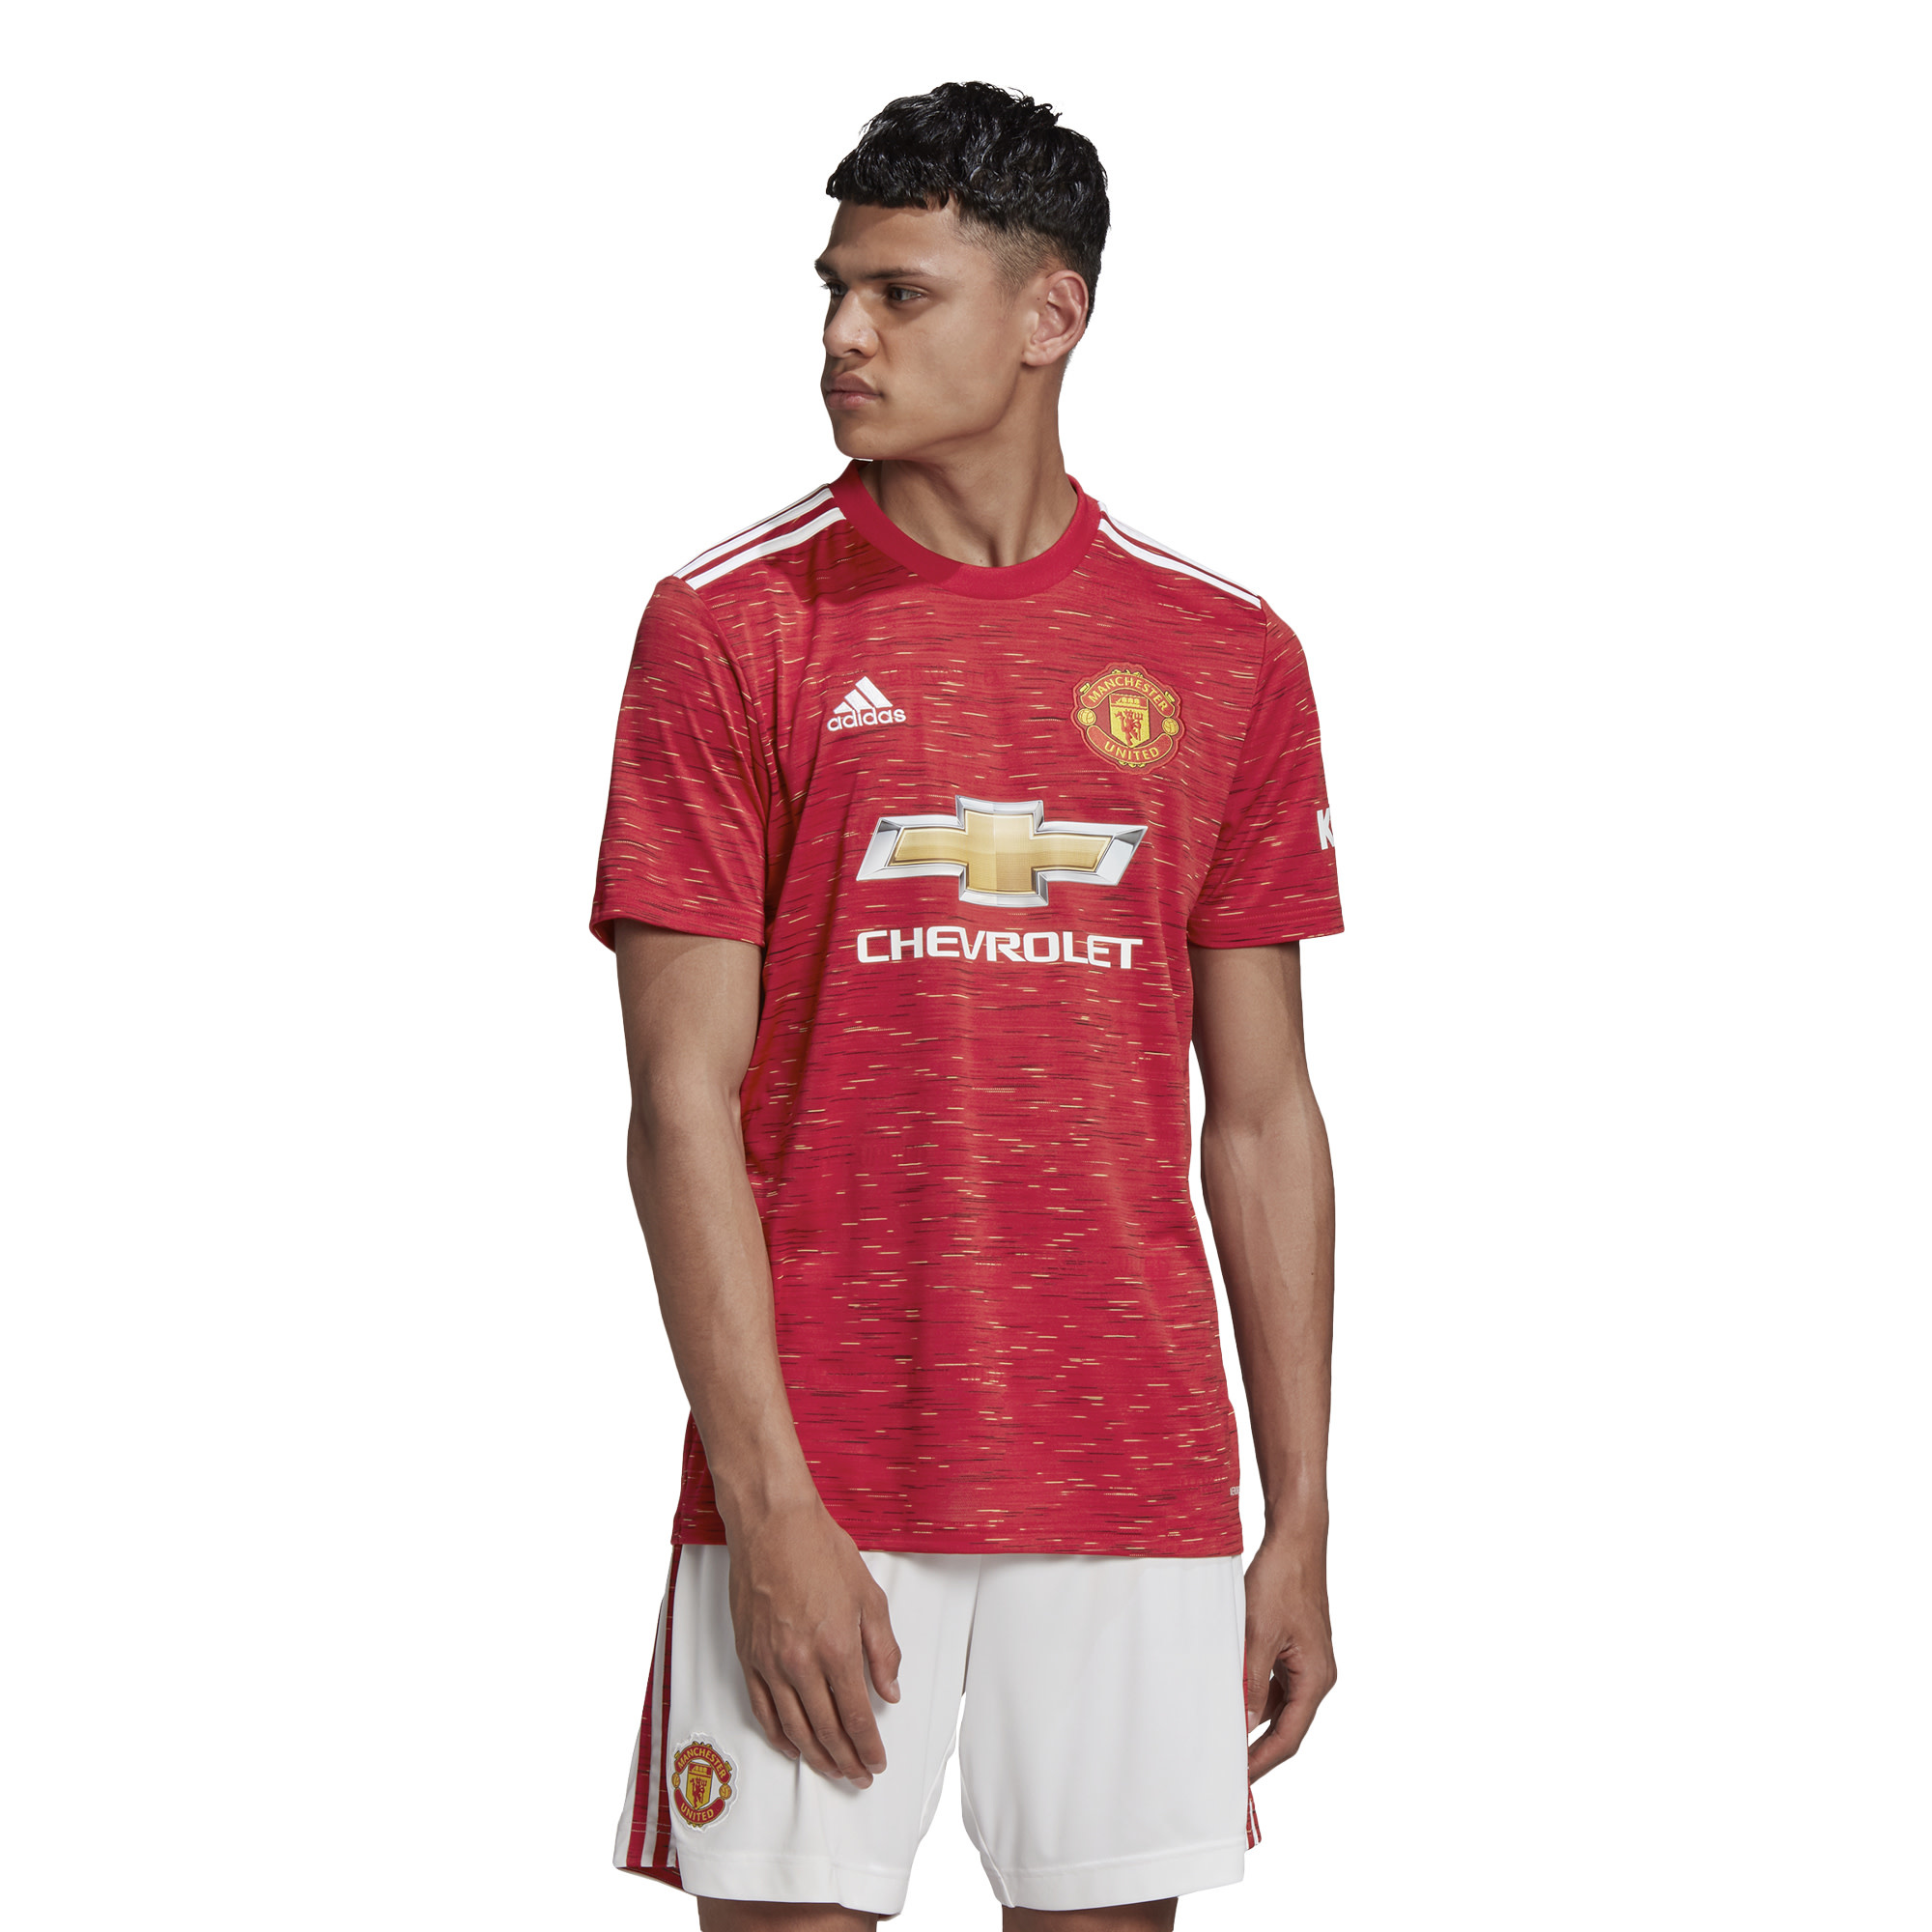 Adidas ADIDAS Manchester United Home Jersey '20-'21